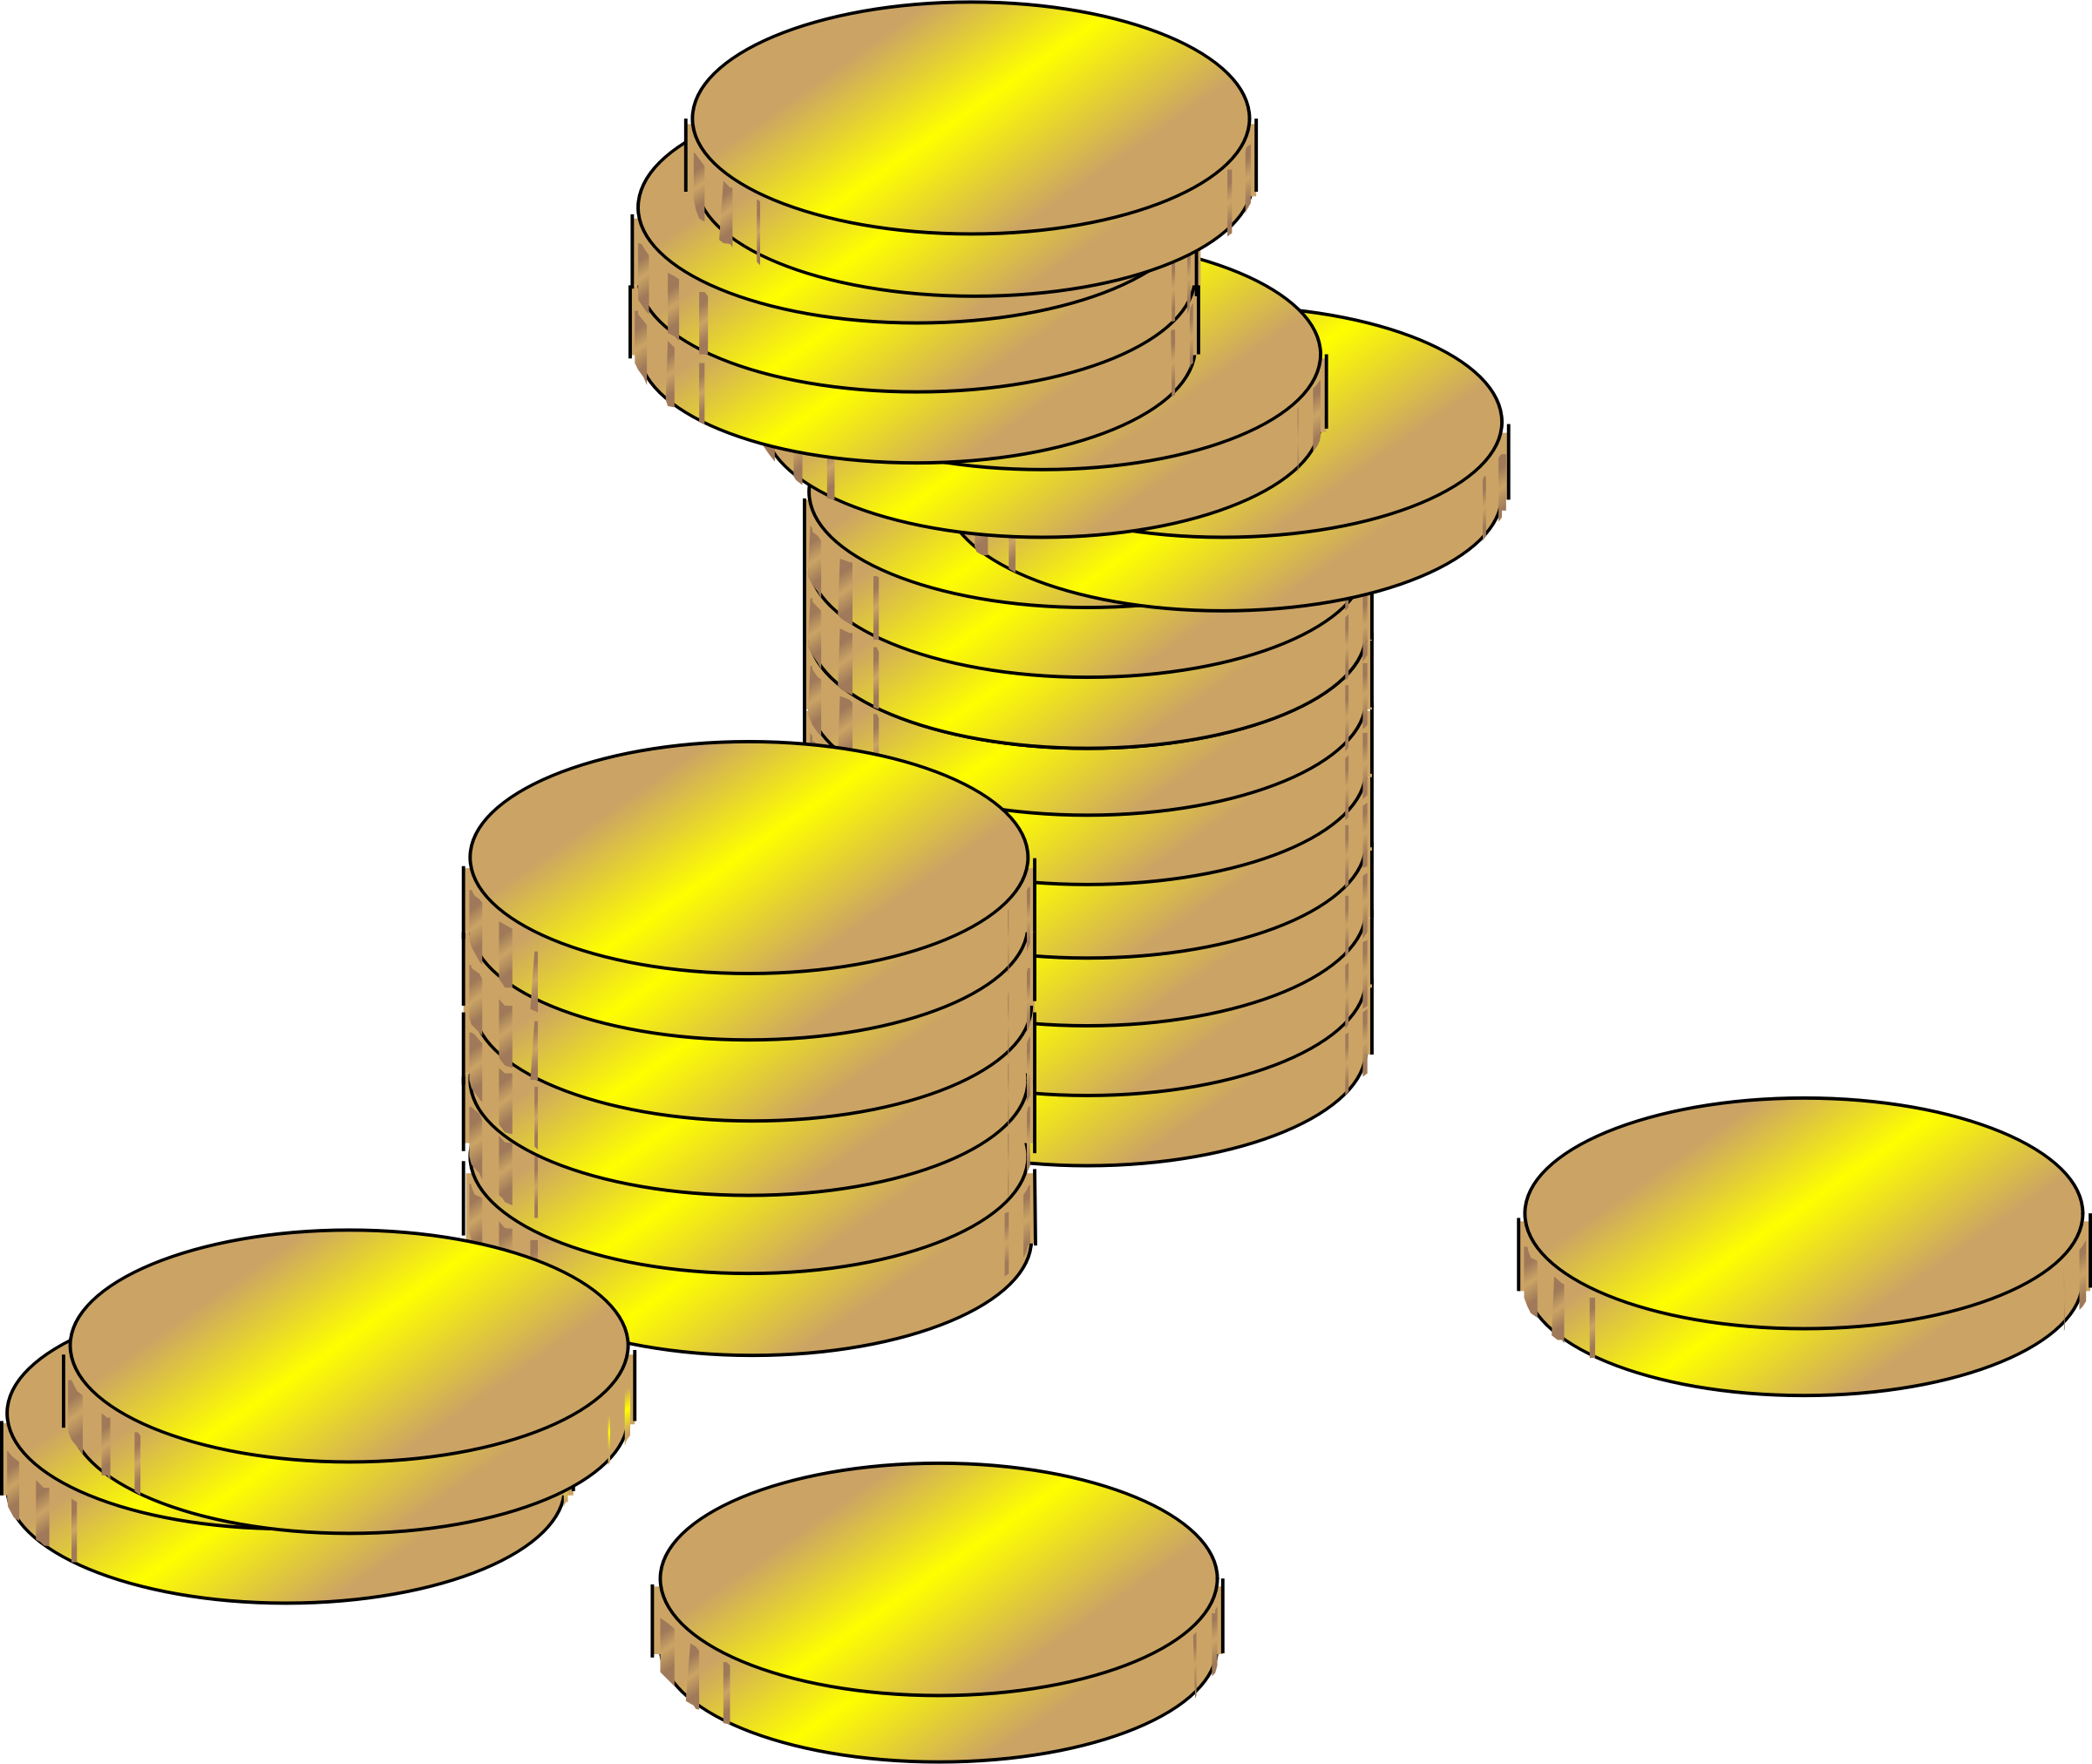 Coin clipart golden coin. Gold coins big image